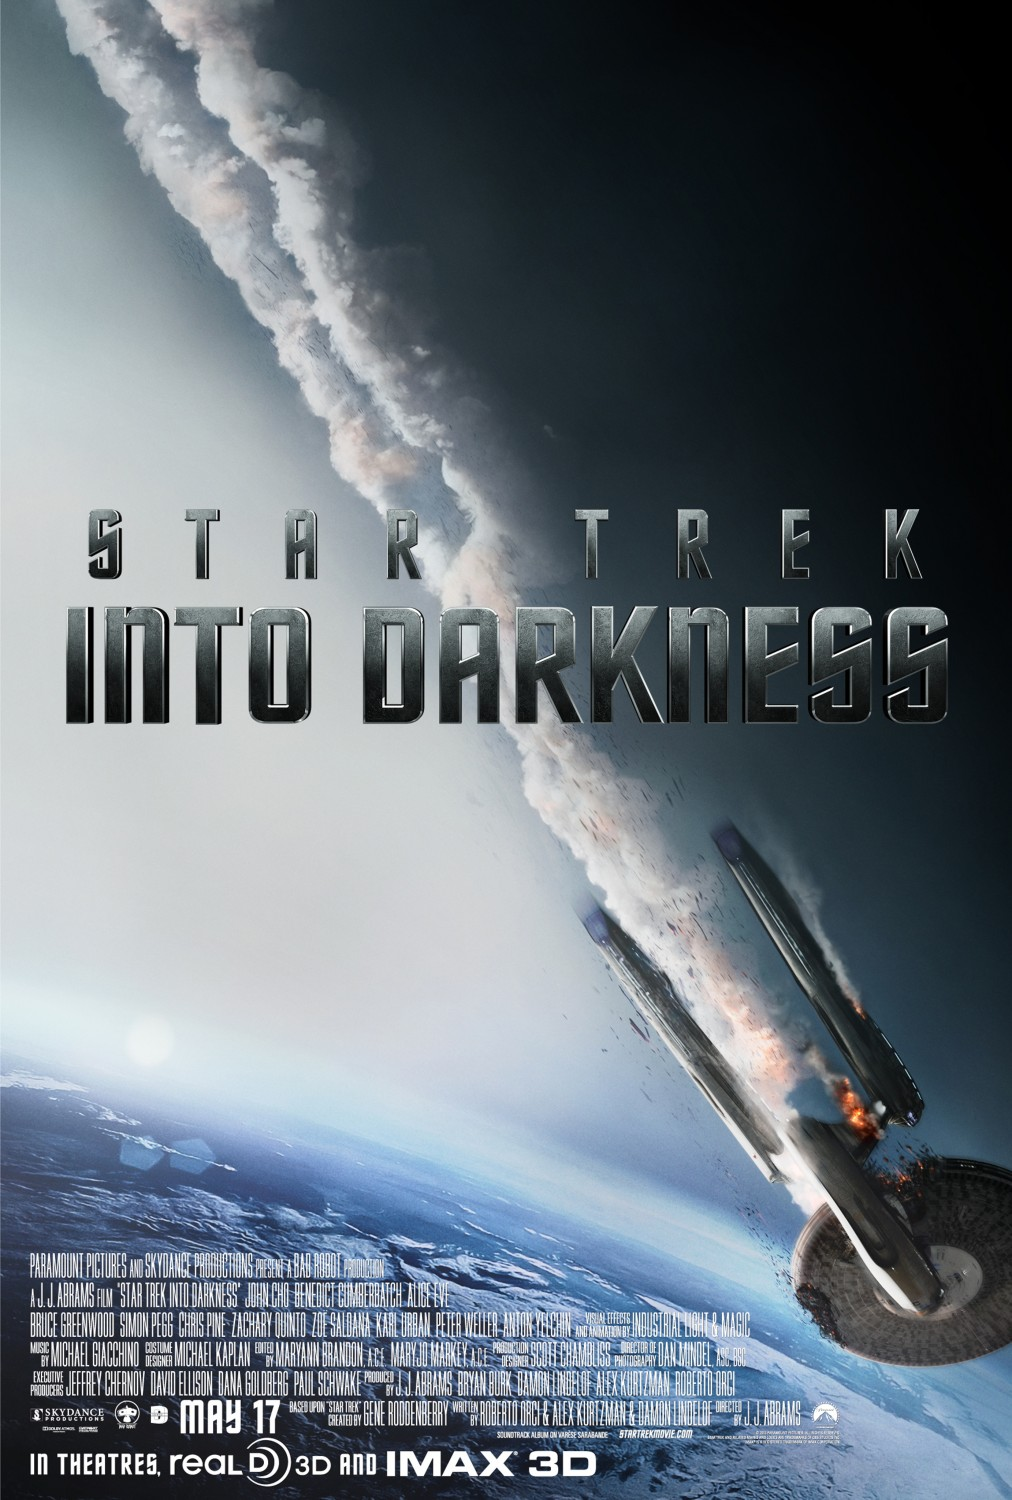 The-Enterprise-in-Star-Trek-Into-Darkness-2013-Movie-Poster